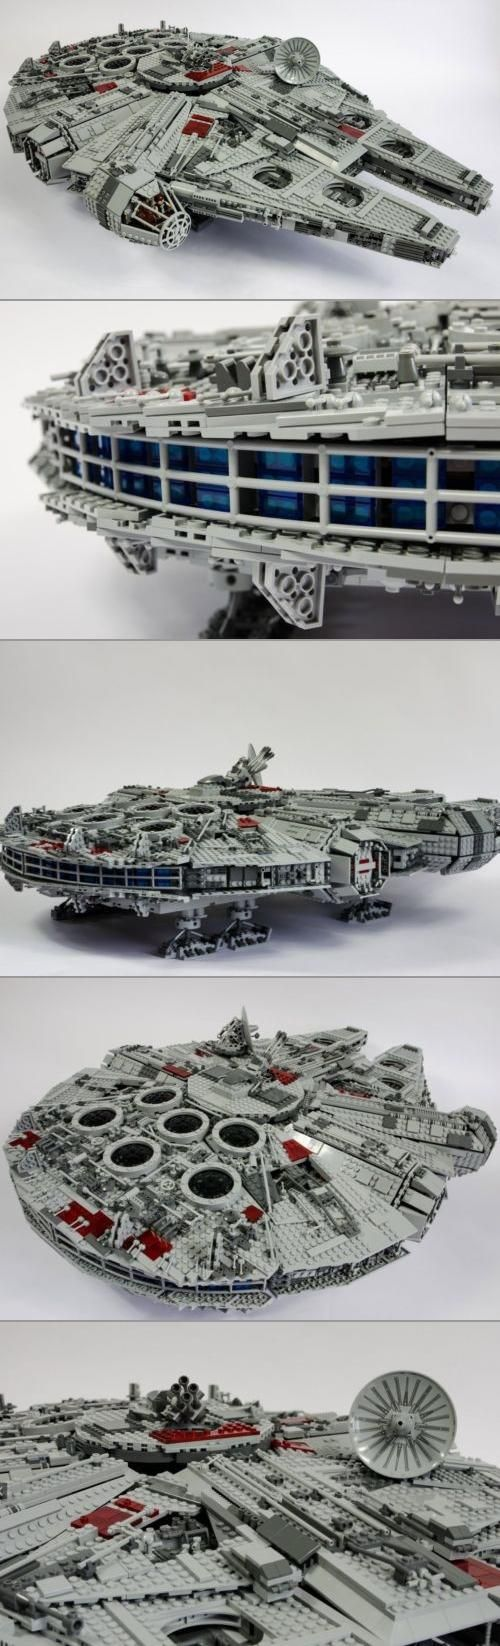 "Did you know that when this Star Wars UCS Millennium Falcon was created (2007), it was the largest set ever produced by LEGO? It measures 33"" long by 22"" wide and 8.3"" tall. With 5000 pieces and a 311 page instruction book, you have your work cut out for you!"